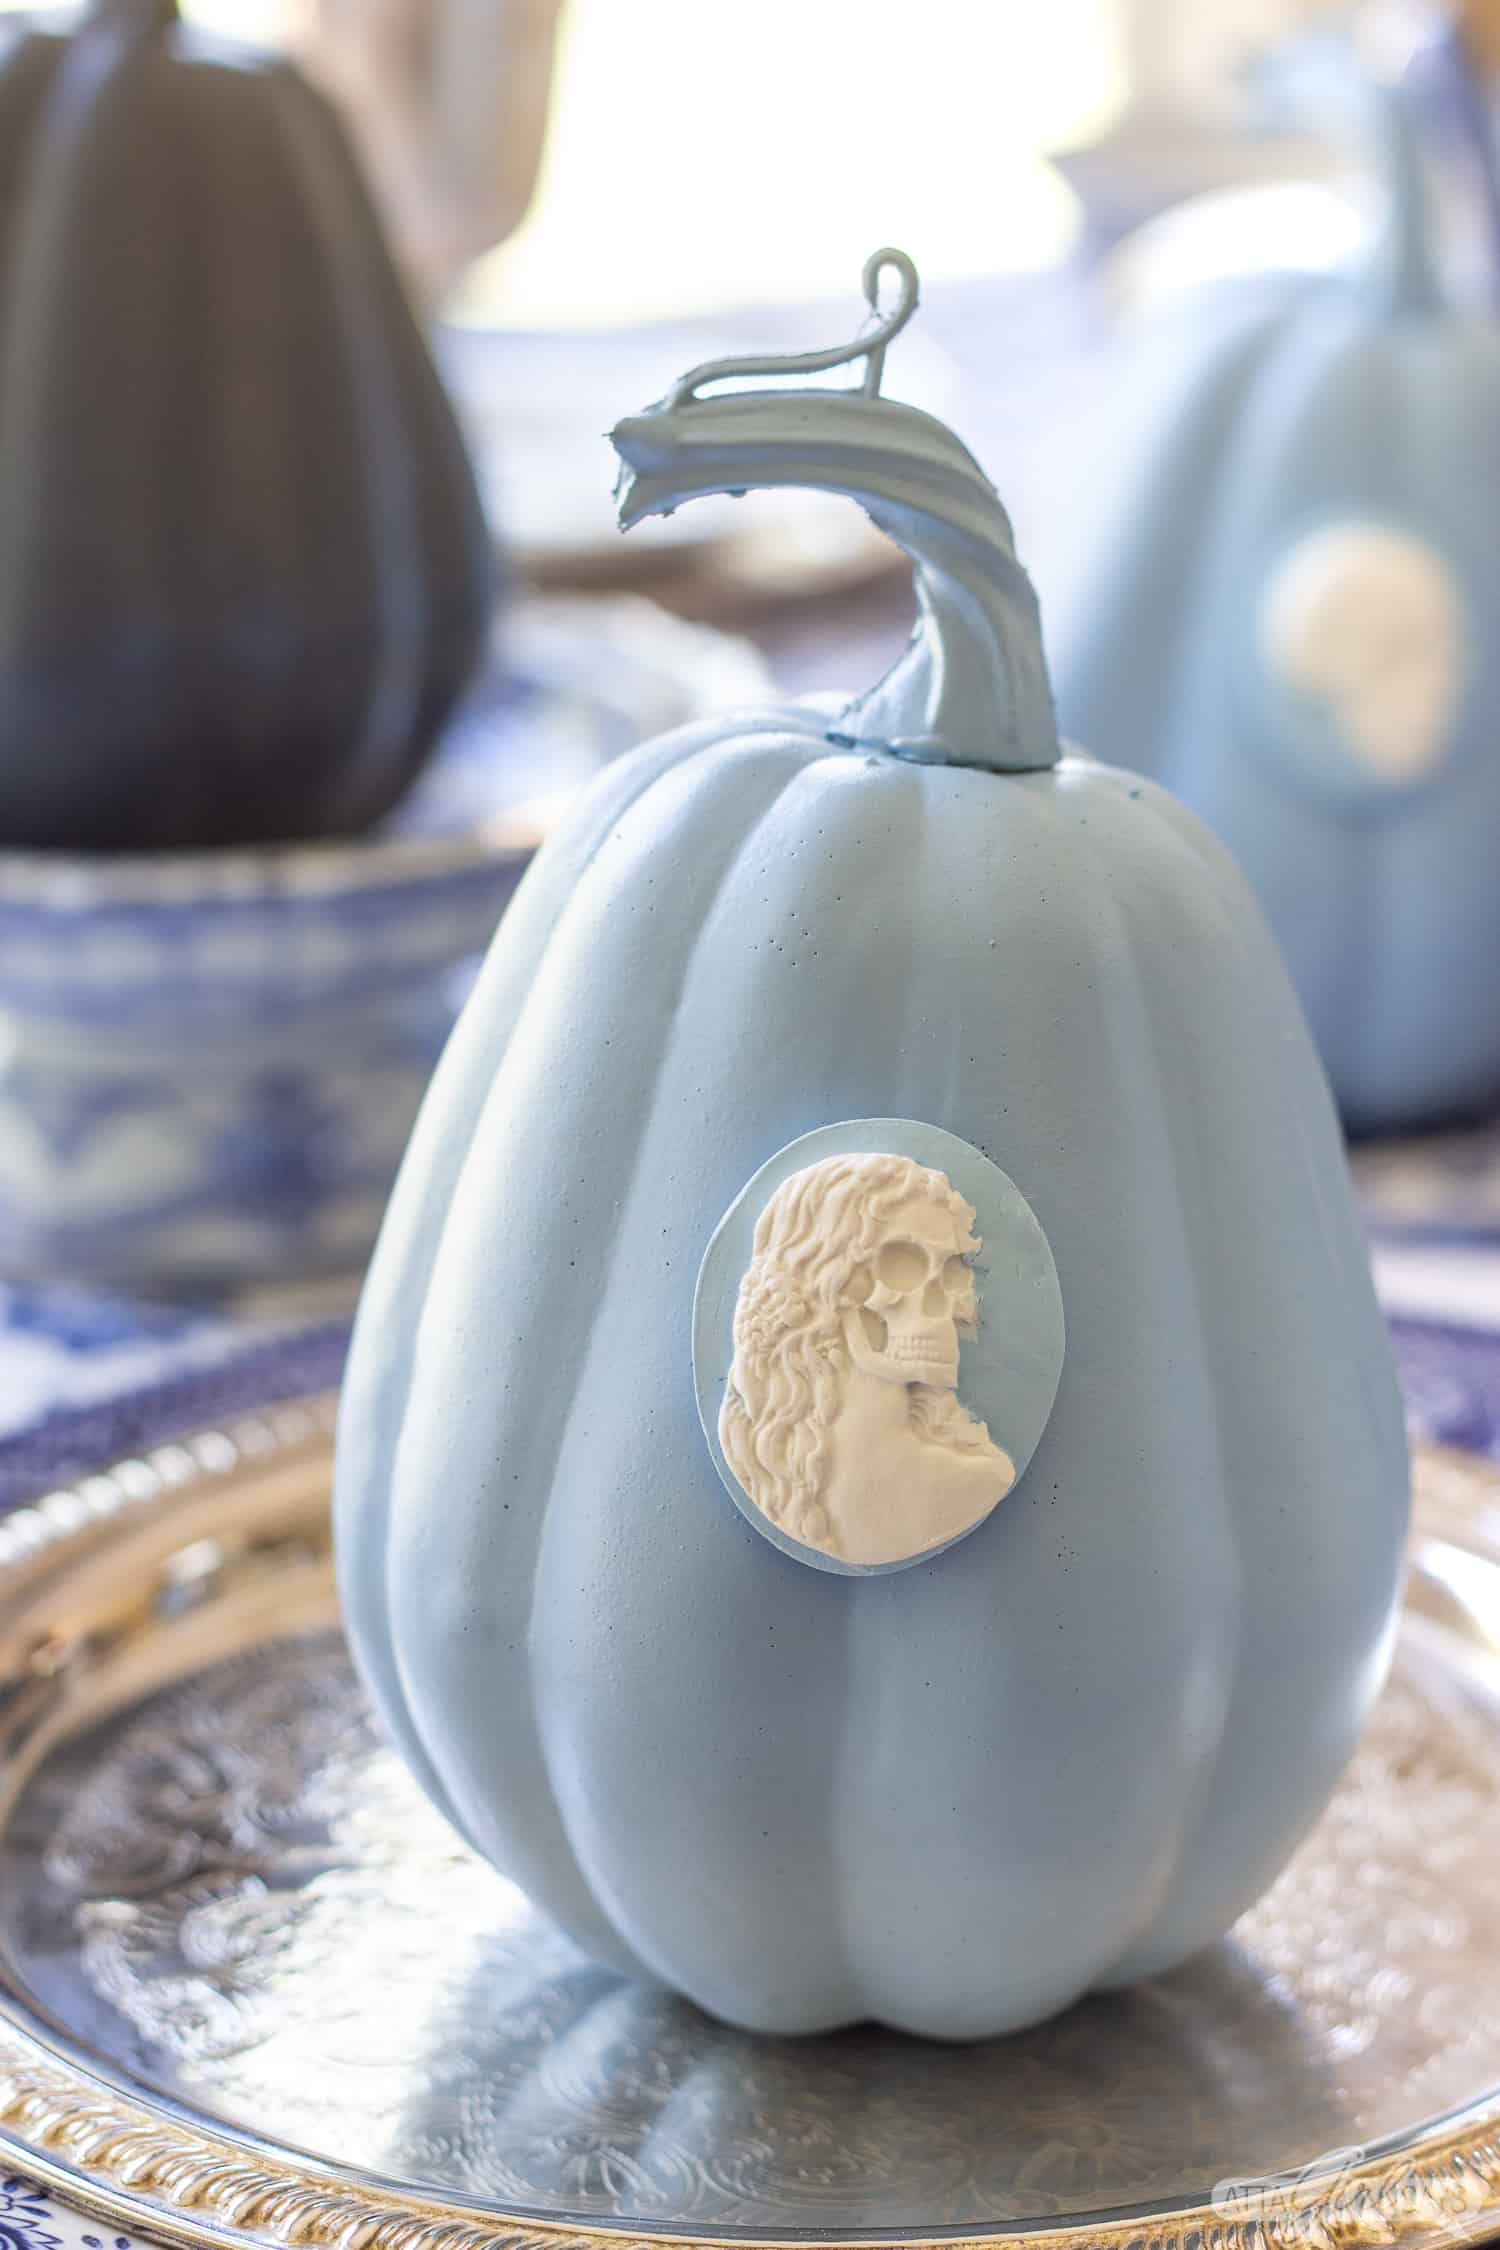 blue and white Wedgwood jasperware inspired pumpkin with a skeleton cameo attached to it